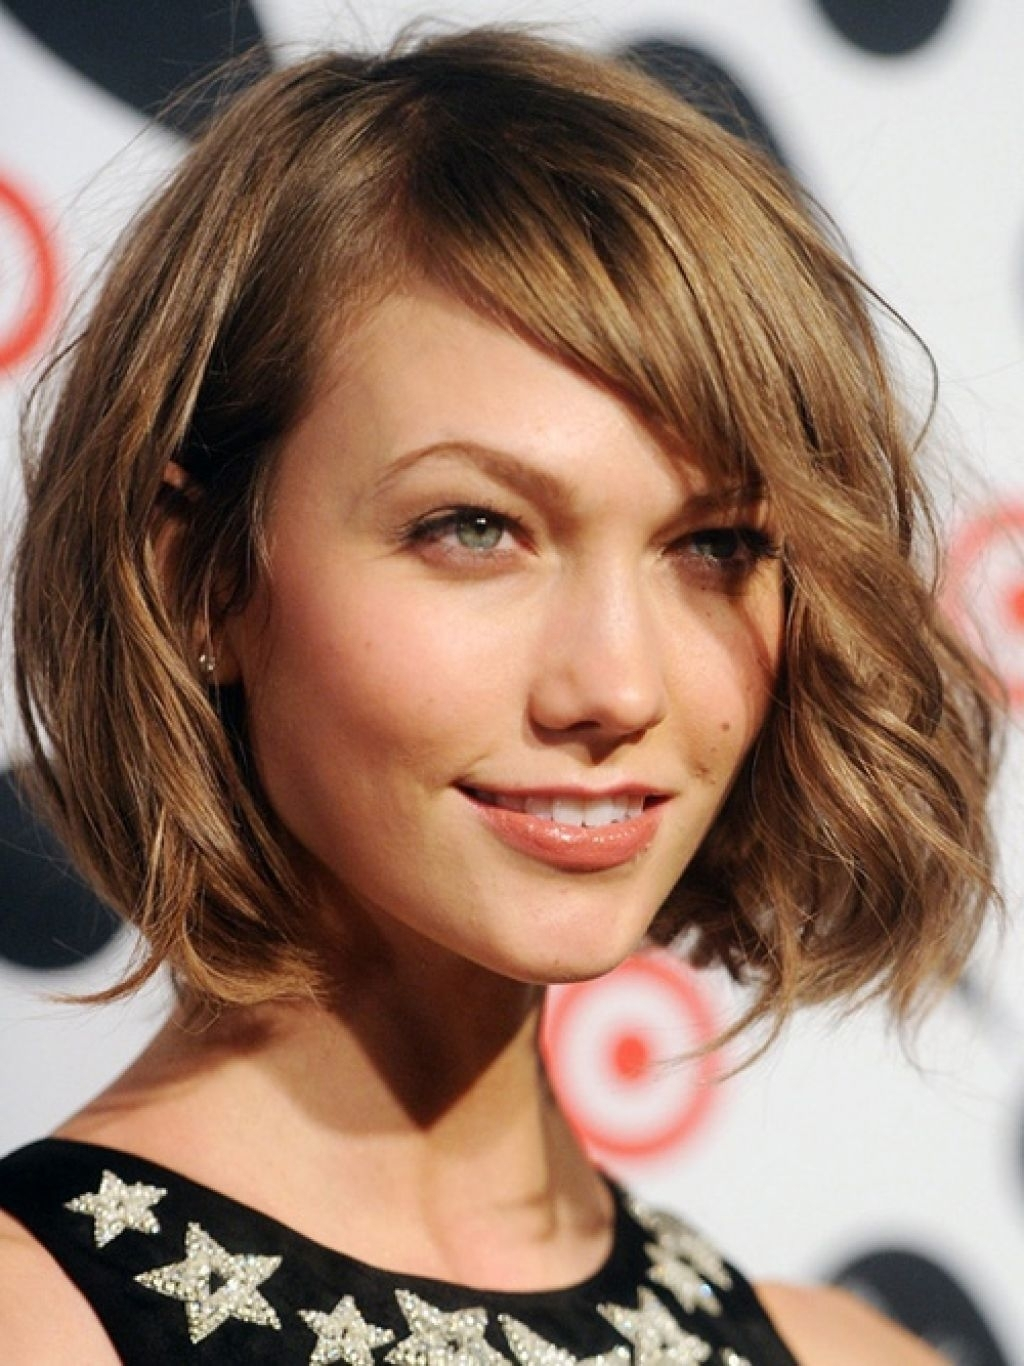 Bob Hairstyles For Thick Hair 2017 Shaggy Bob Hairstyle Trends Throughout Best And Newest Shaggy Bob Hairstyles For Thick Hair (View 5 of 15)